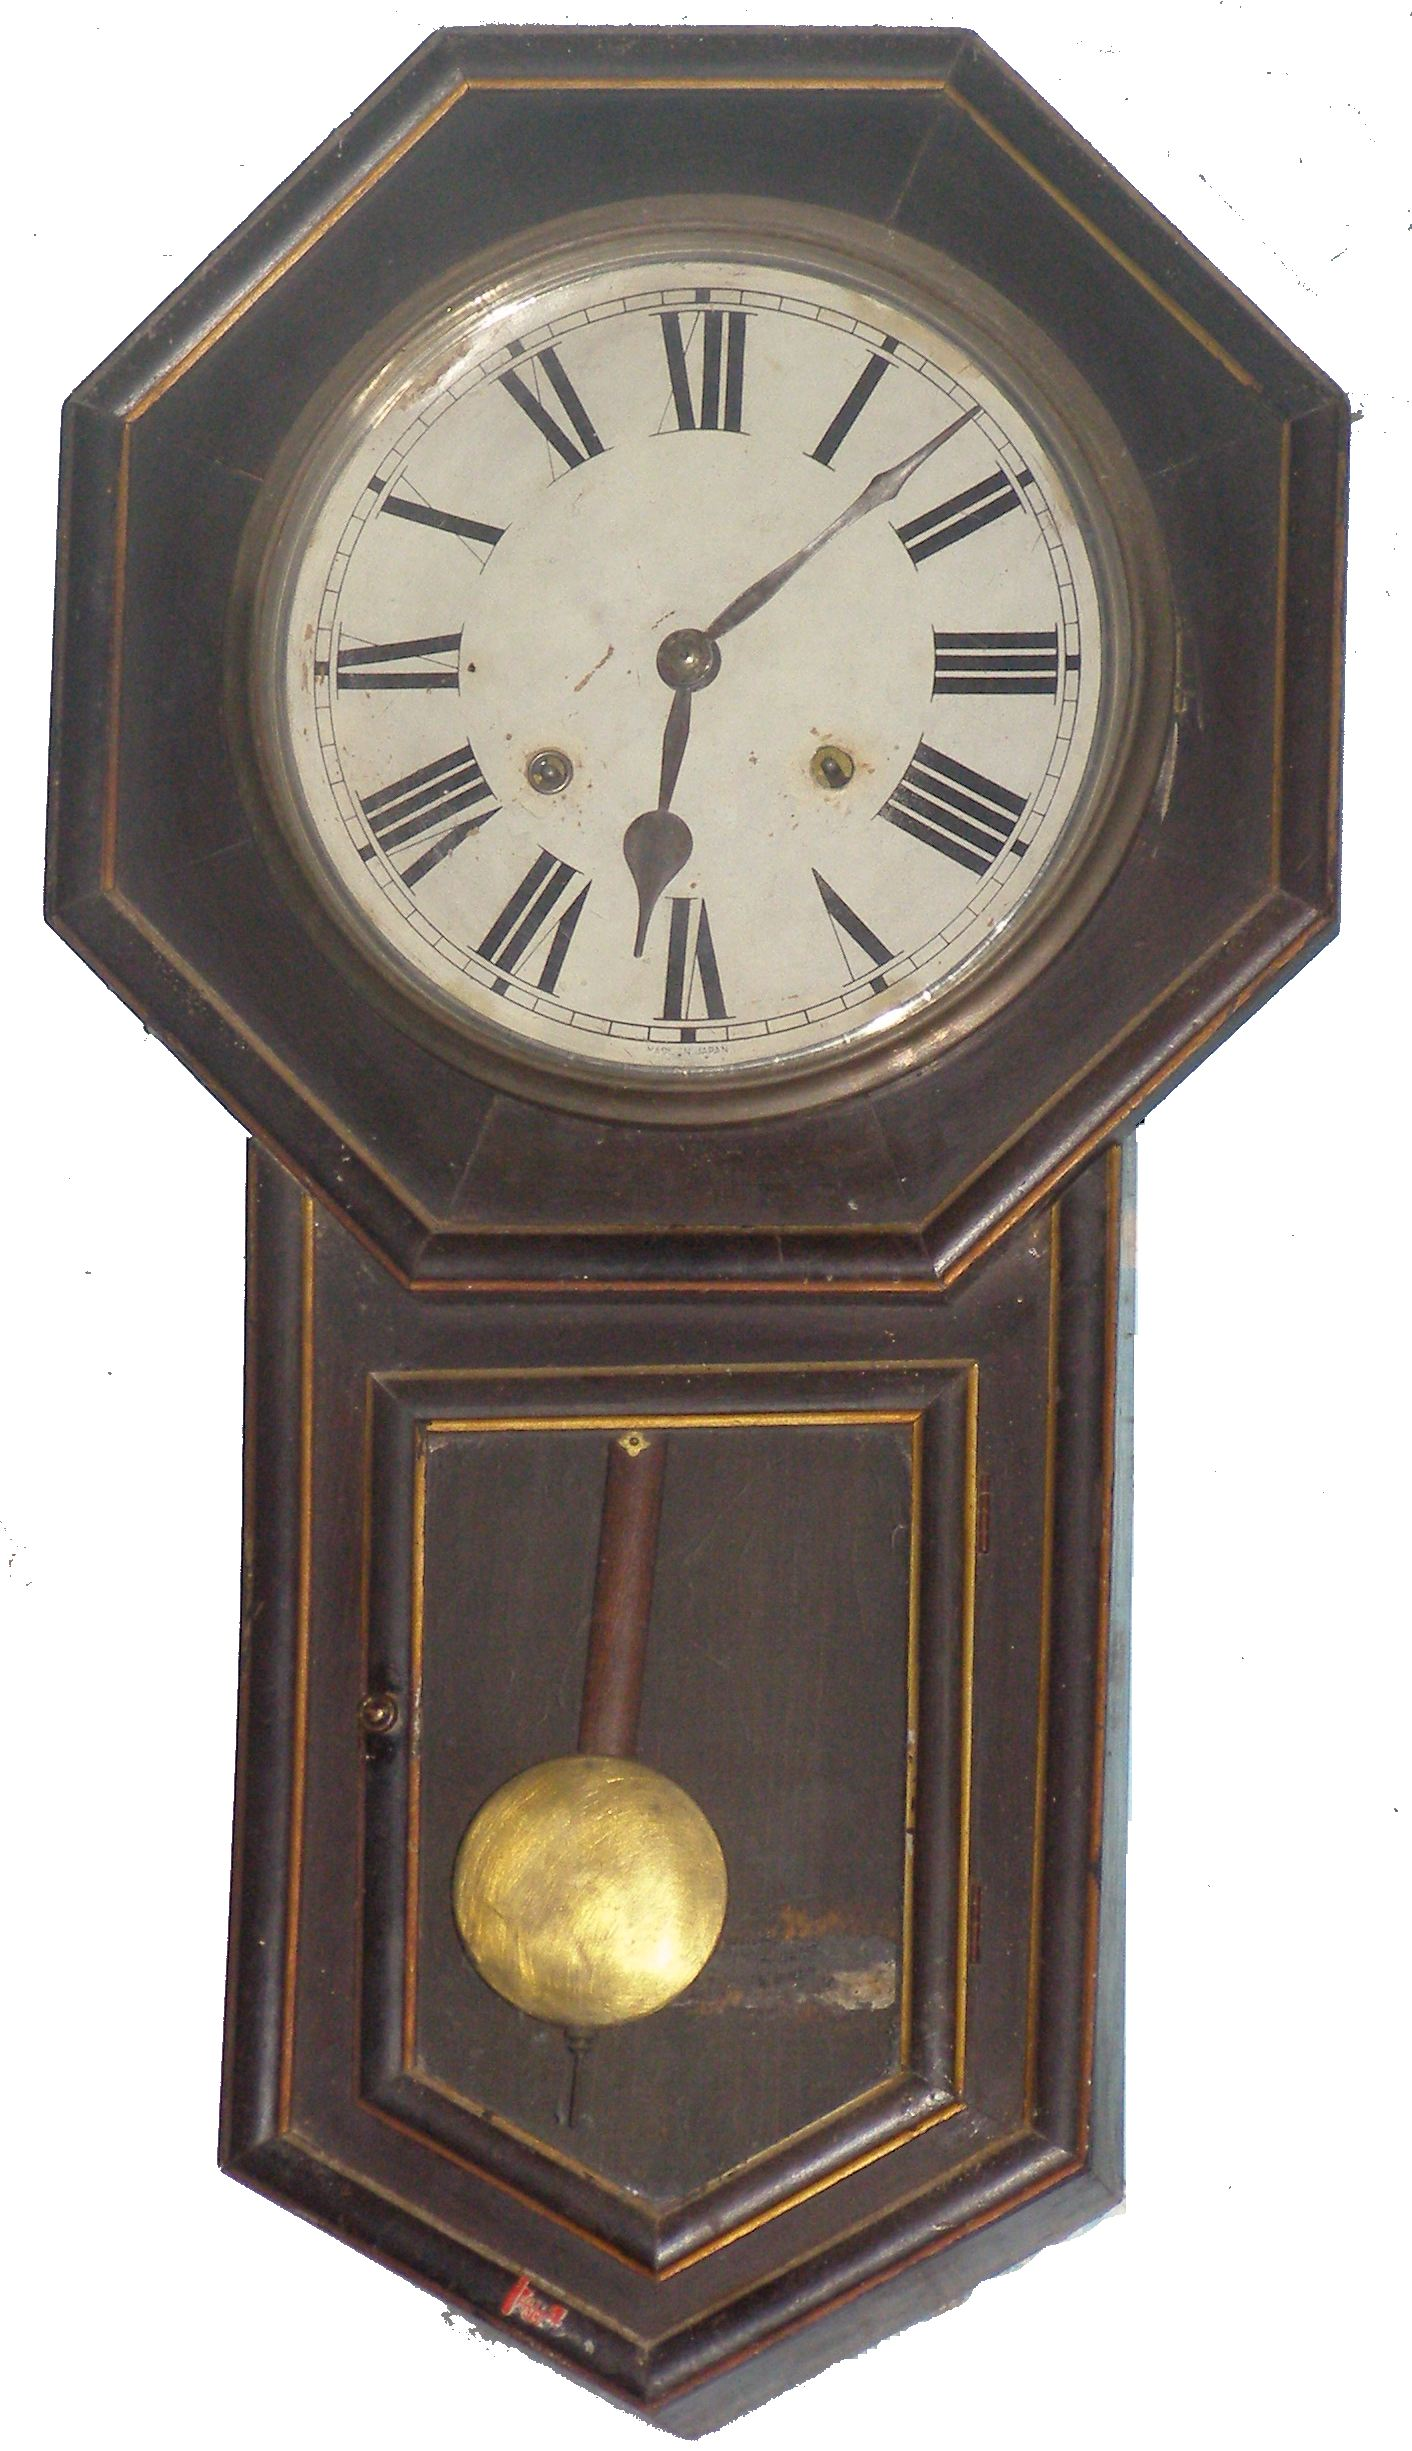 File:Old Pendulum clock.jpg - Wikipedia, the free encyclopedia